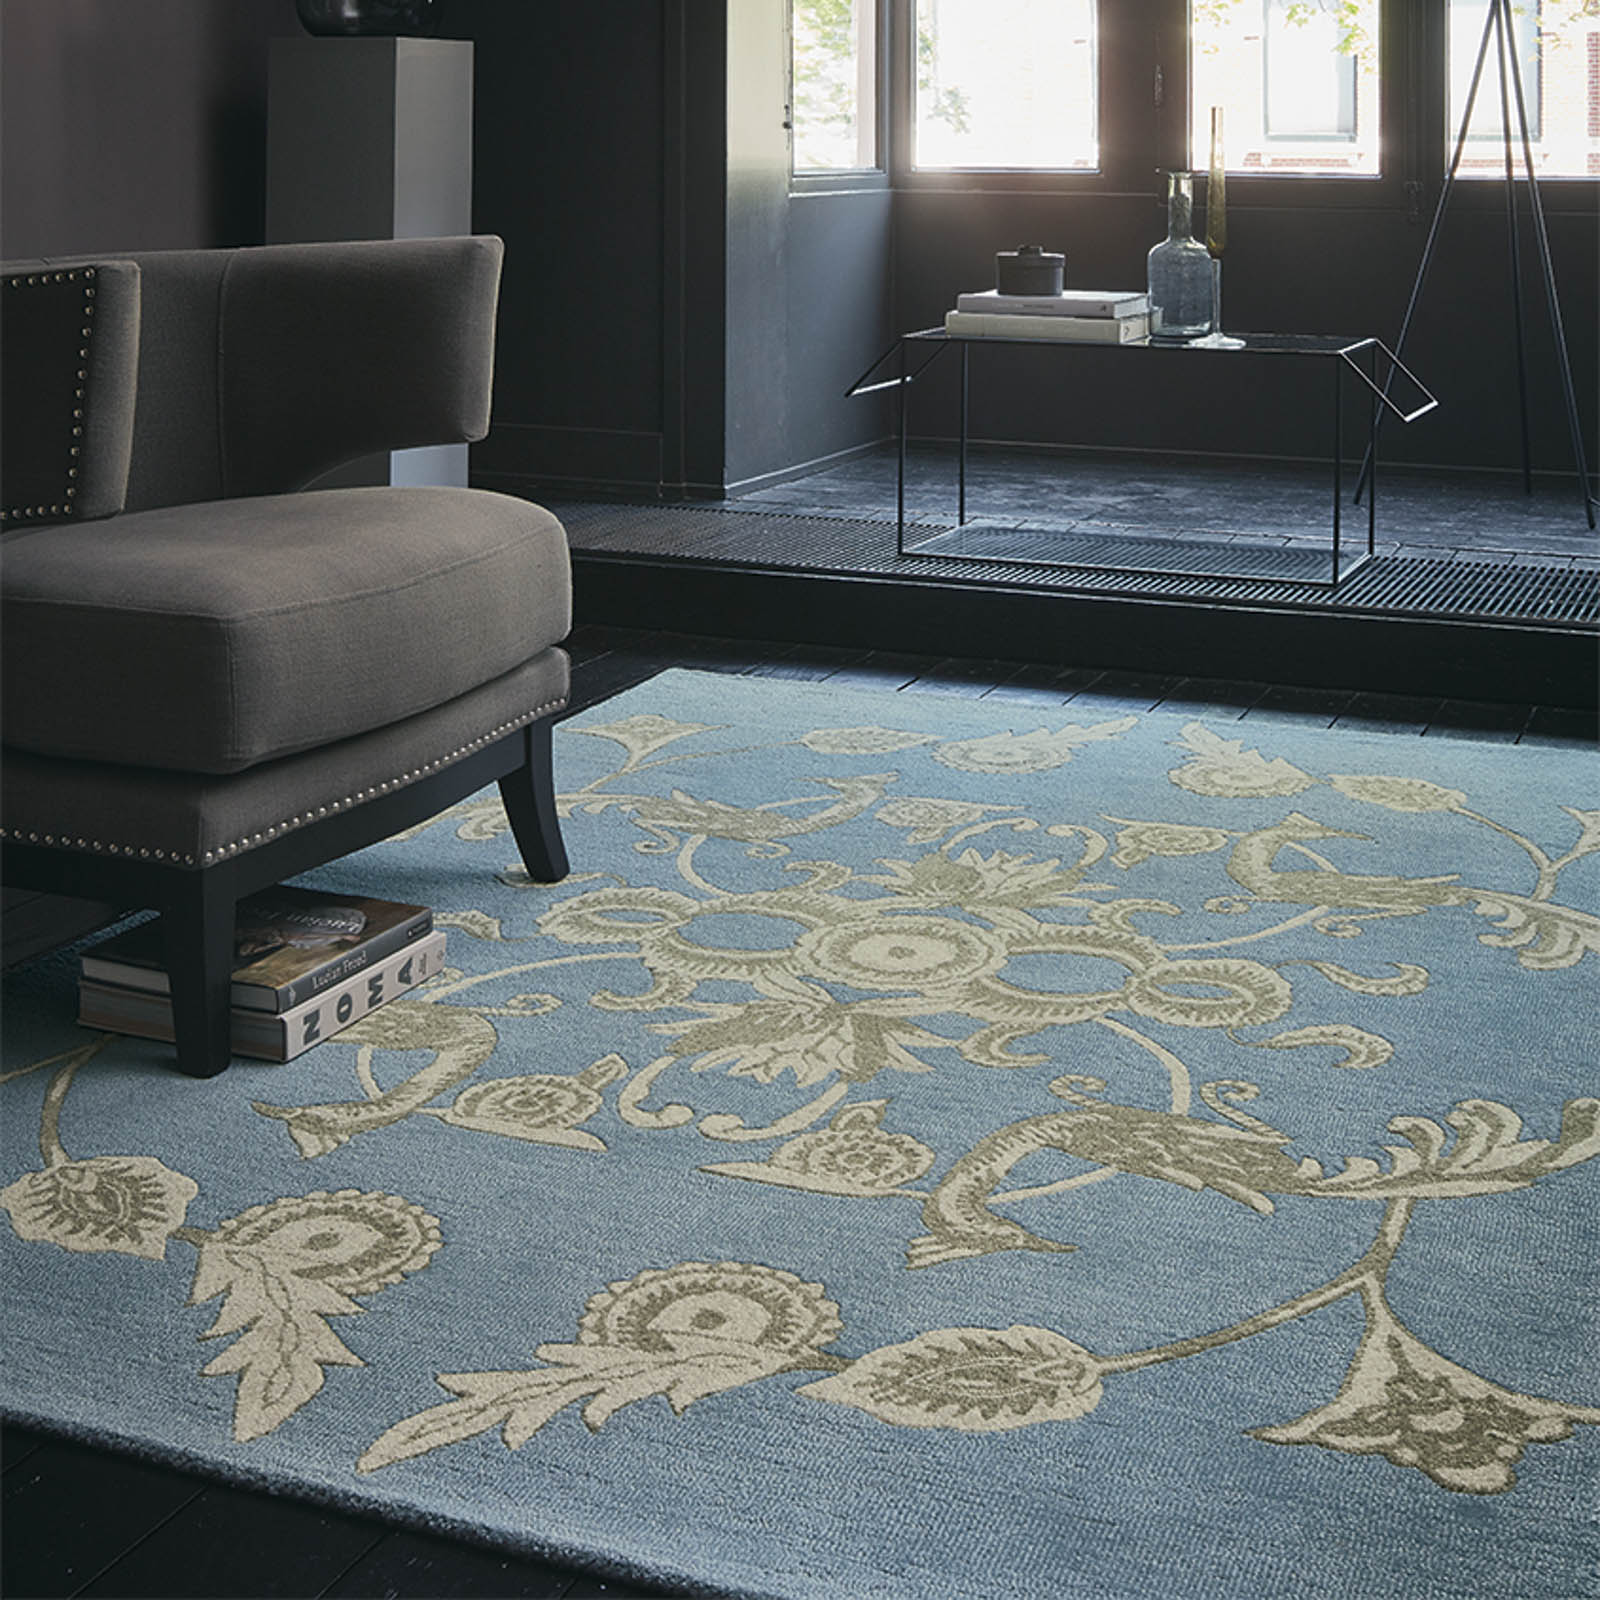 Persia Uni Rugs 37718 by Wedgwood